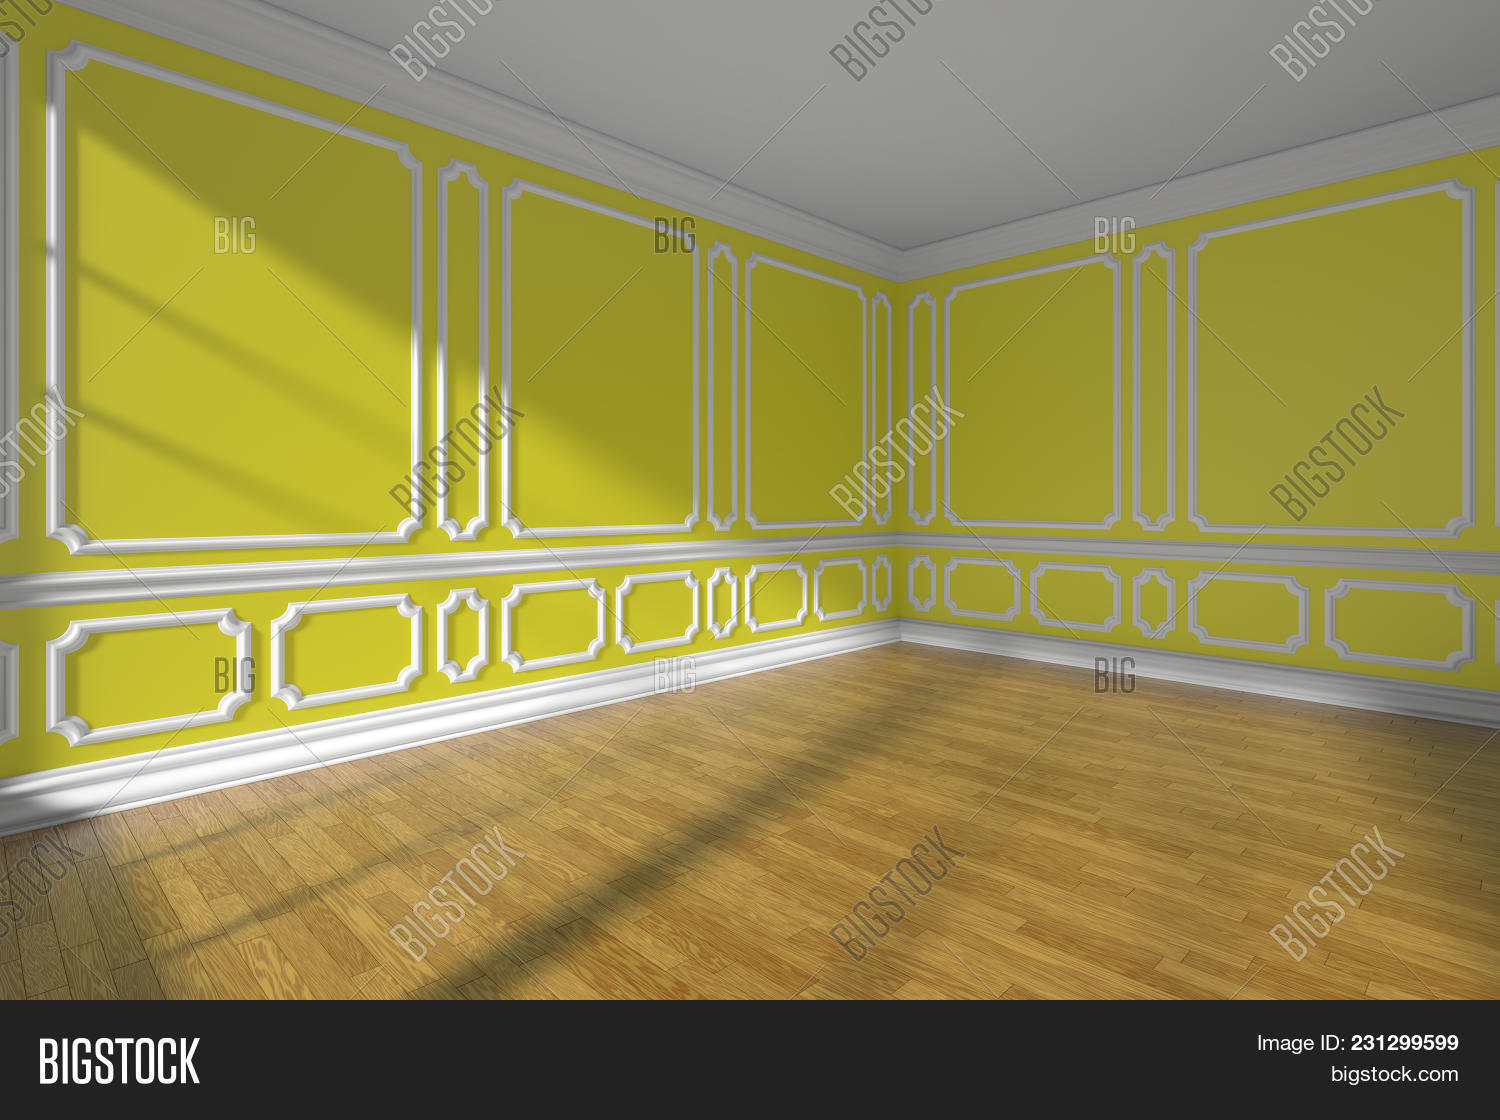 Yellow Empty Room Wall Image & Photo (Free Trial) | Bigstock